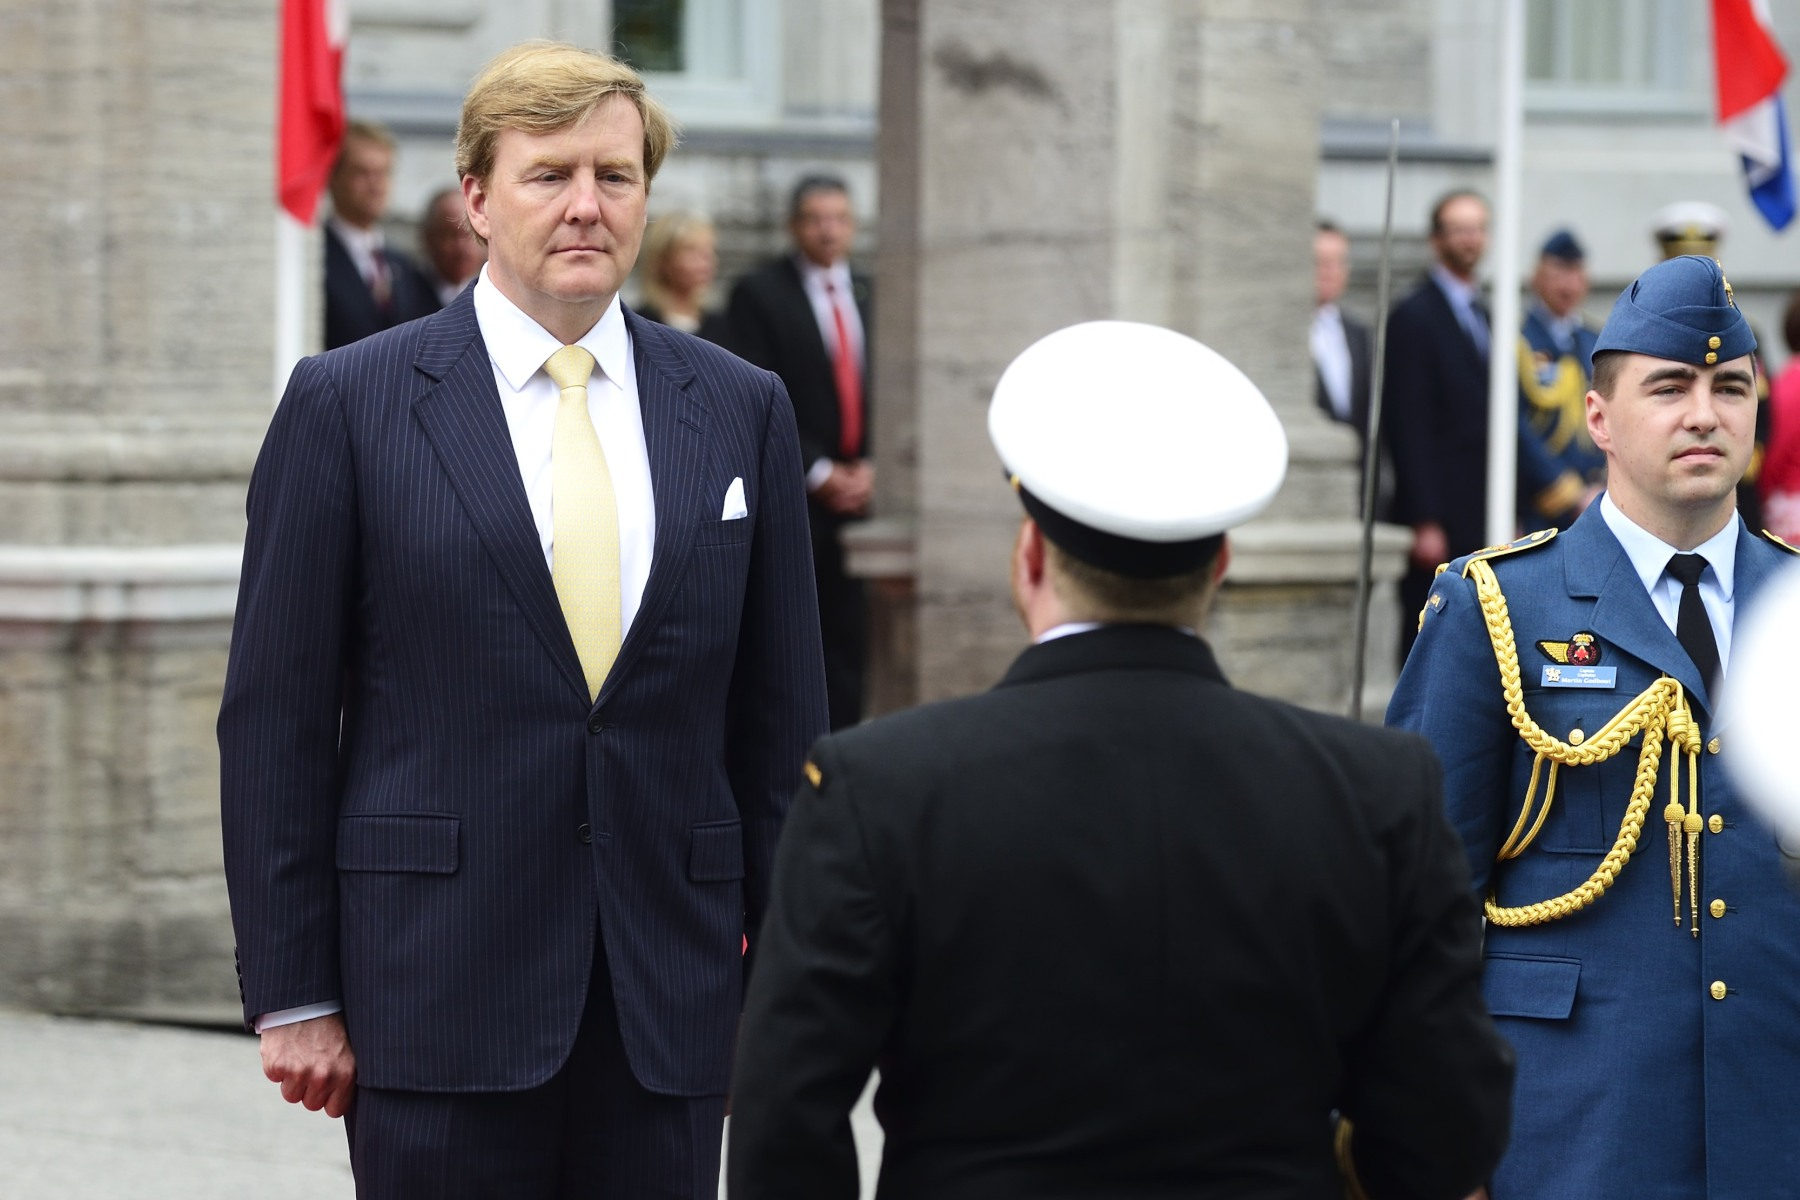 His Majesty King Willem-Alexander was saluted by the Canadian Armed Forces guard of honour.